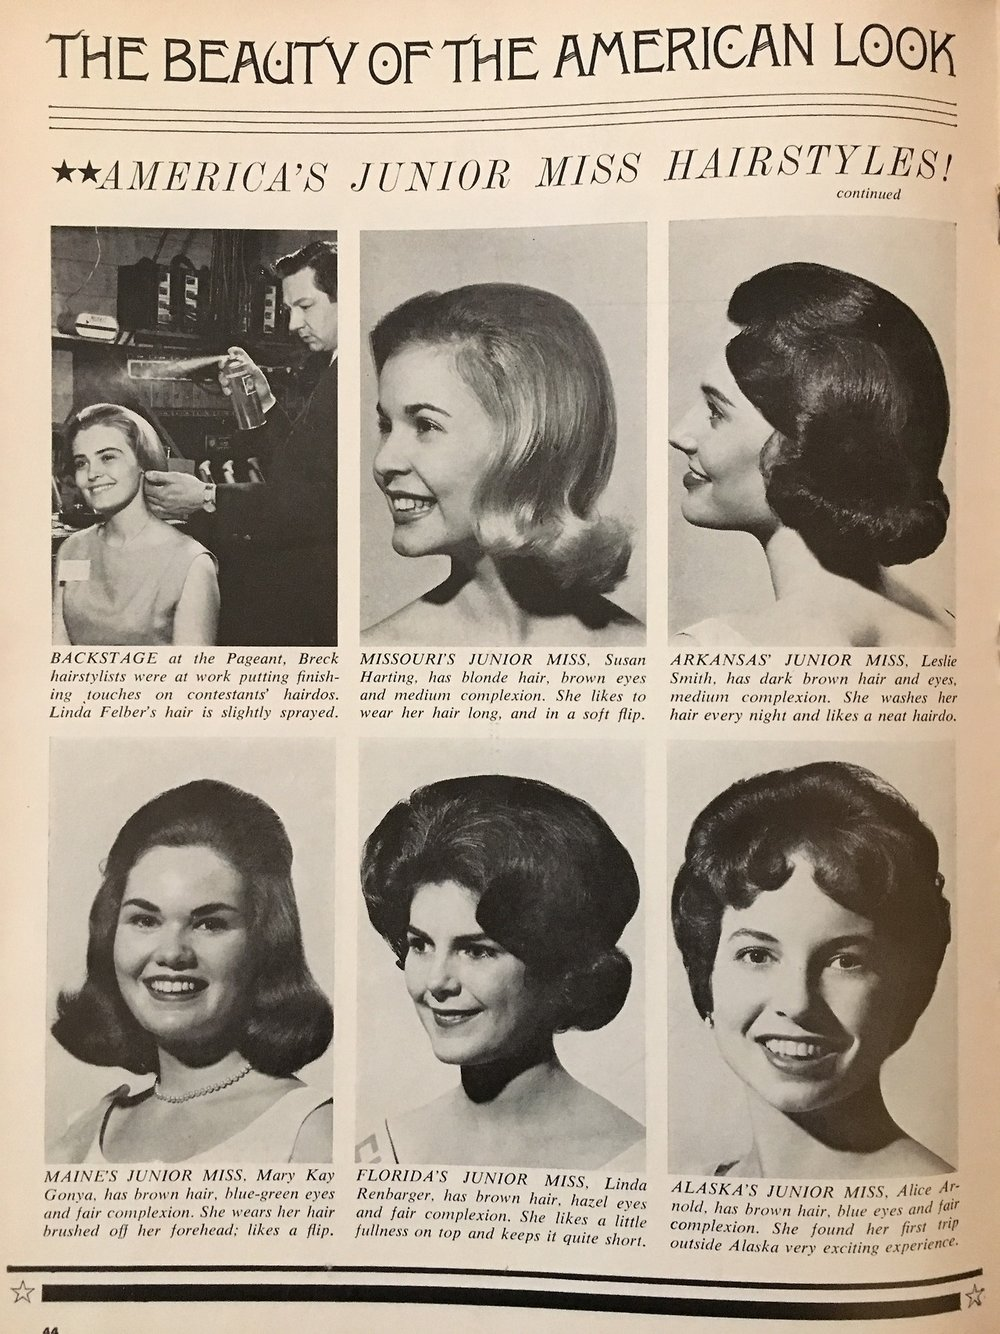 The Beauty of the American Look. America's Junior Miss Hairstyles. 'Teen Magazine. July 1964.